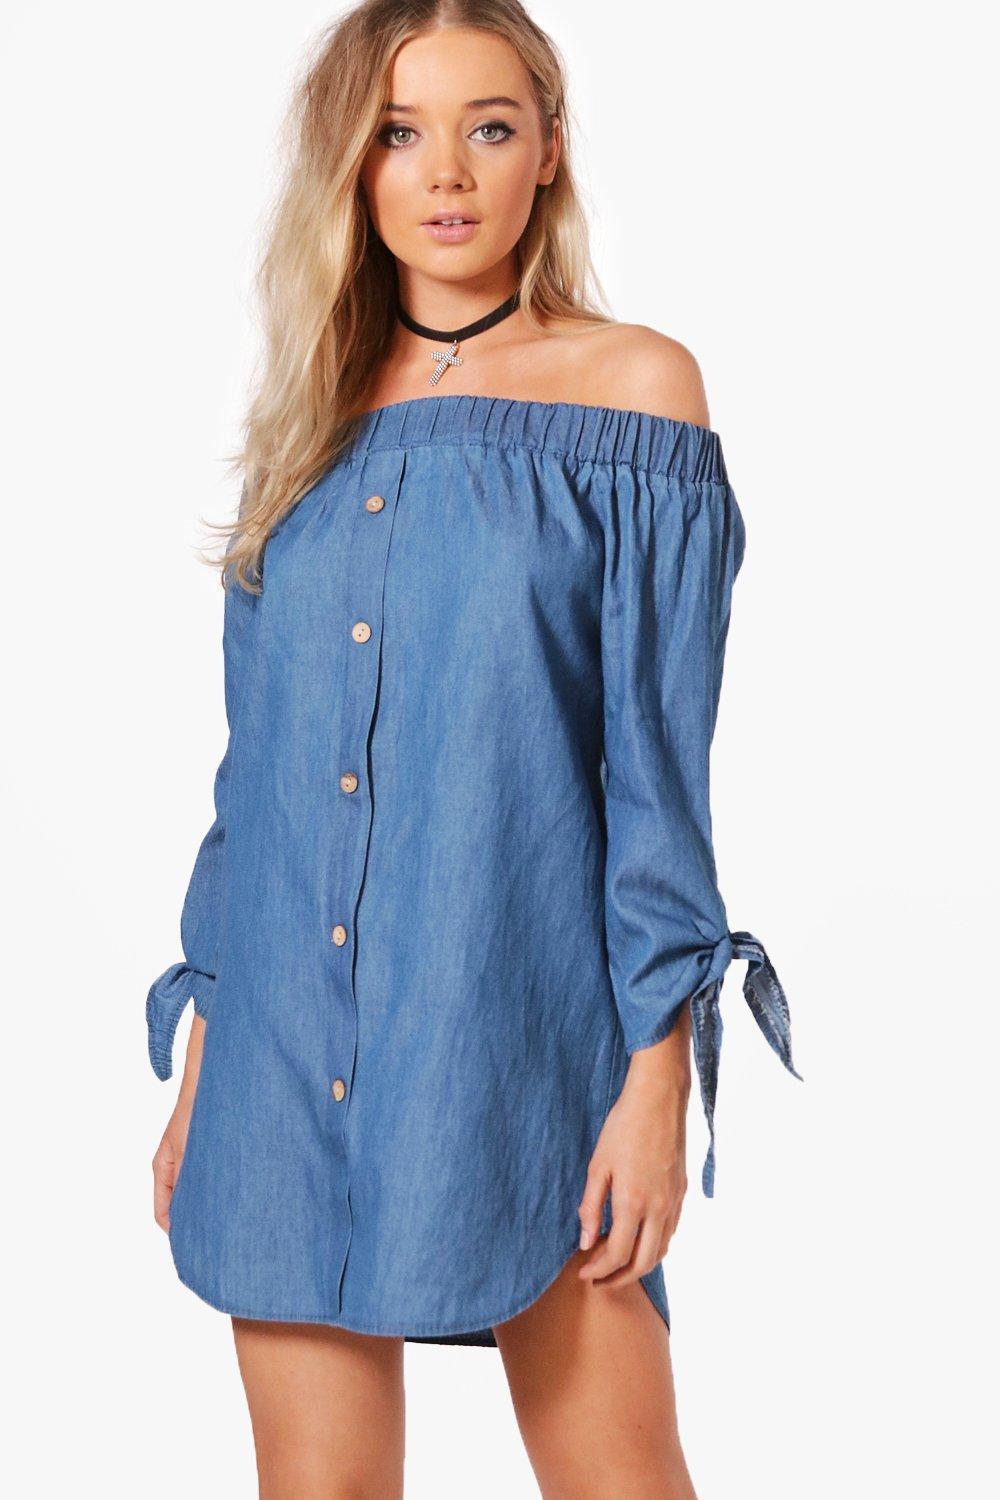 Boohoo Button Off Shoulder Chambray Dress Discount 100% Guaranteed Genuine Sale Online Pictures Online Fast Express aLM8kmljm